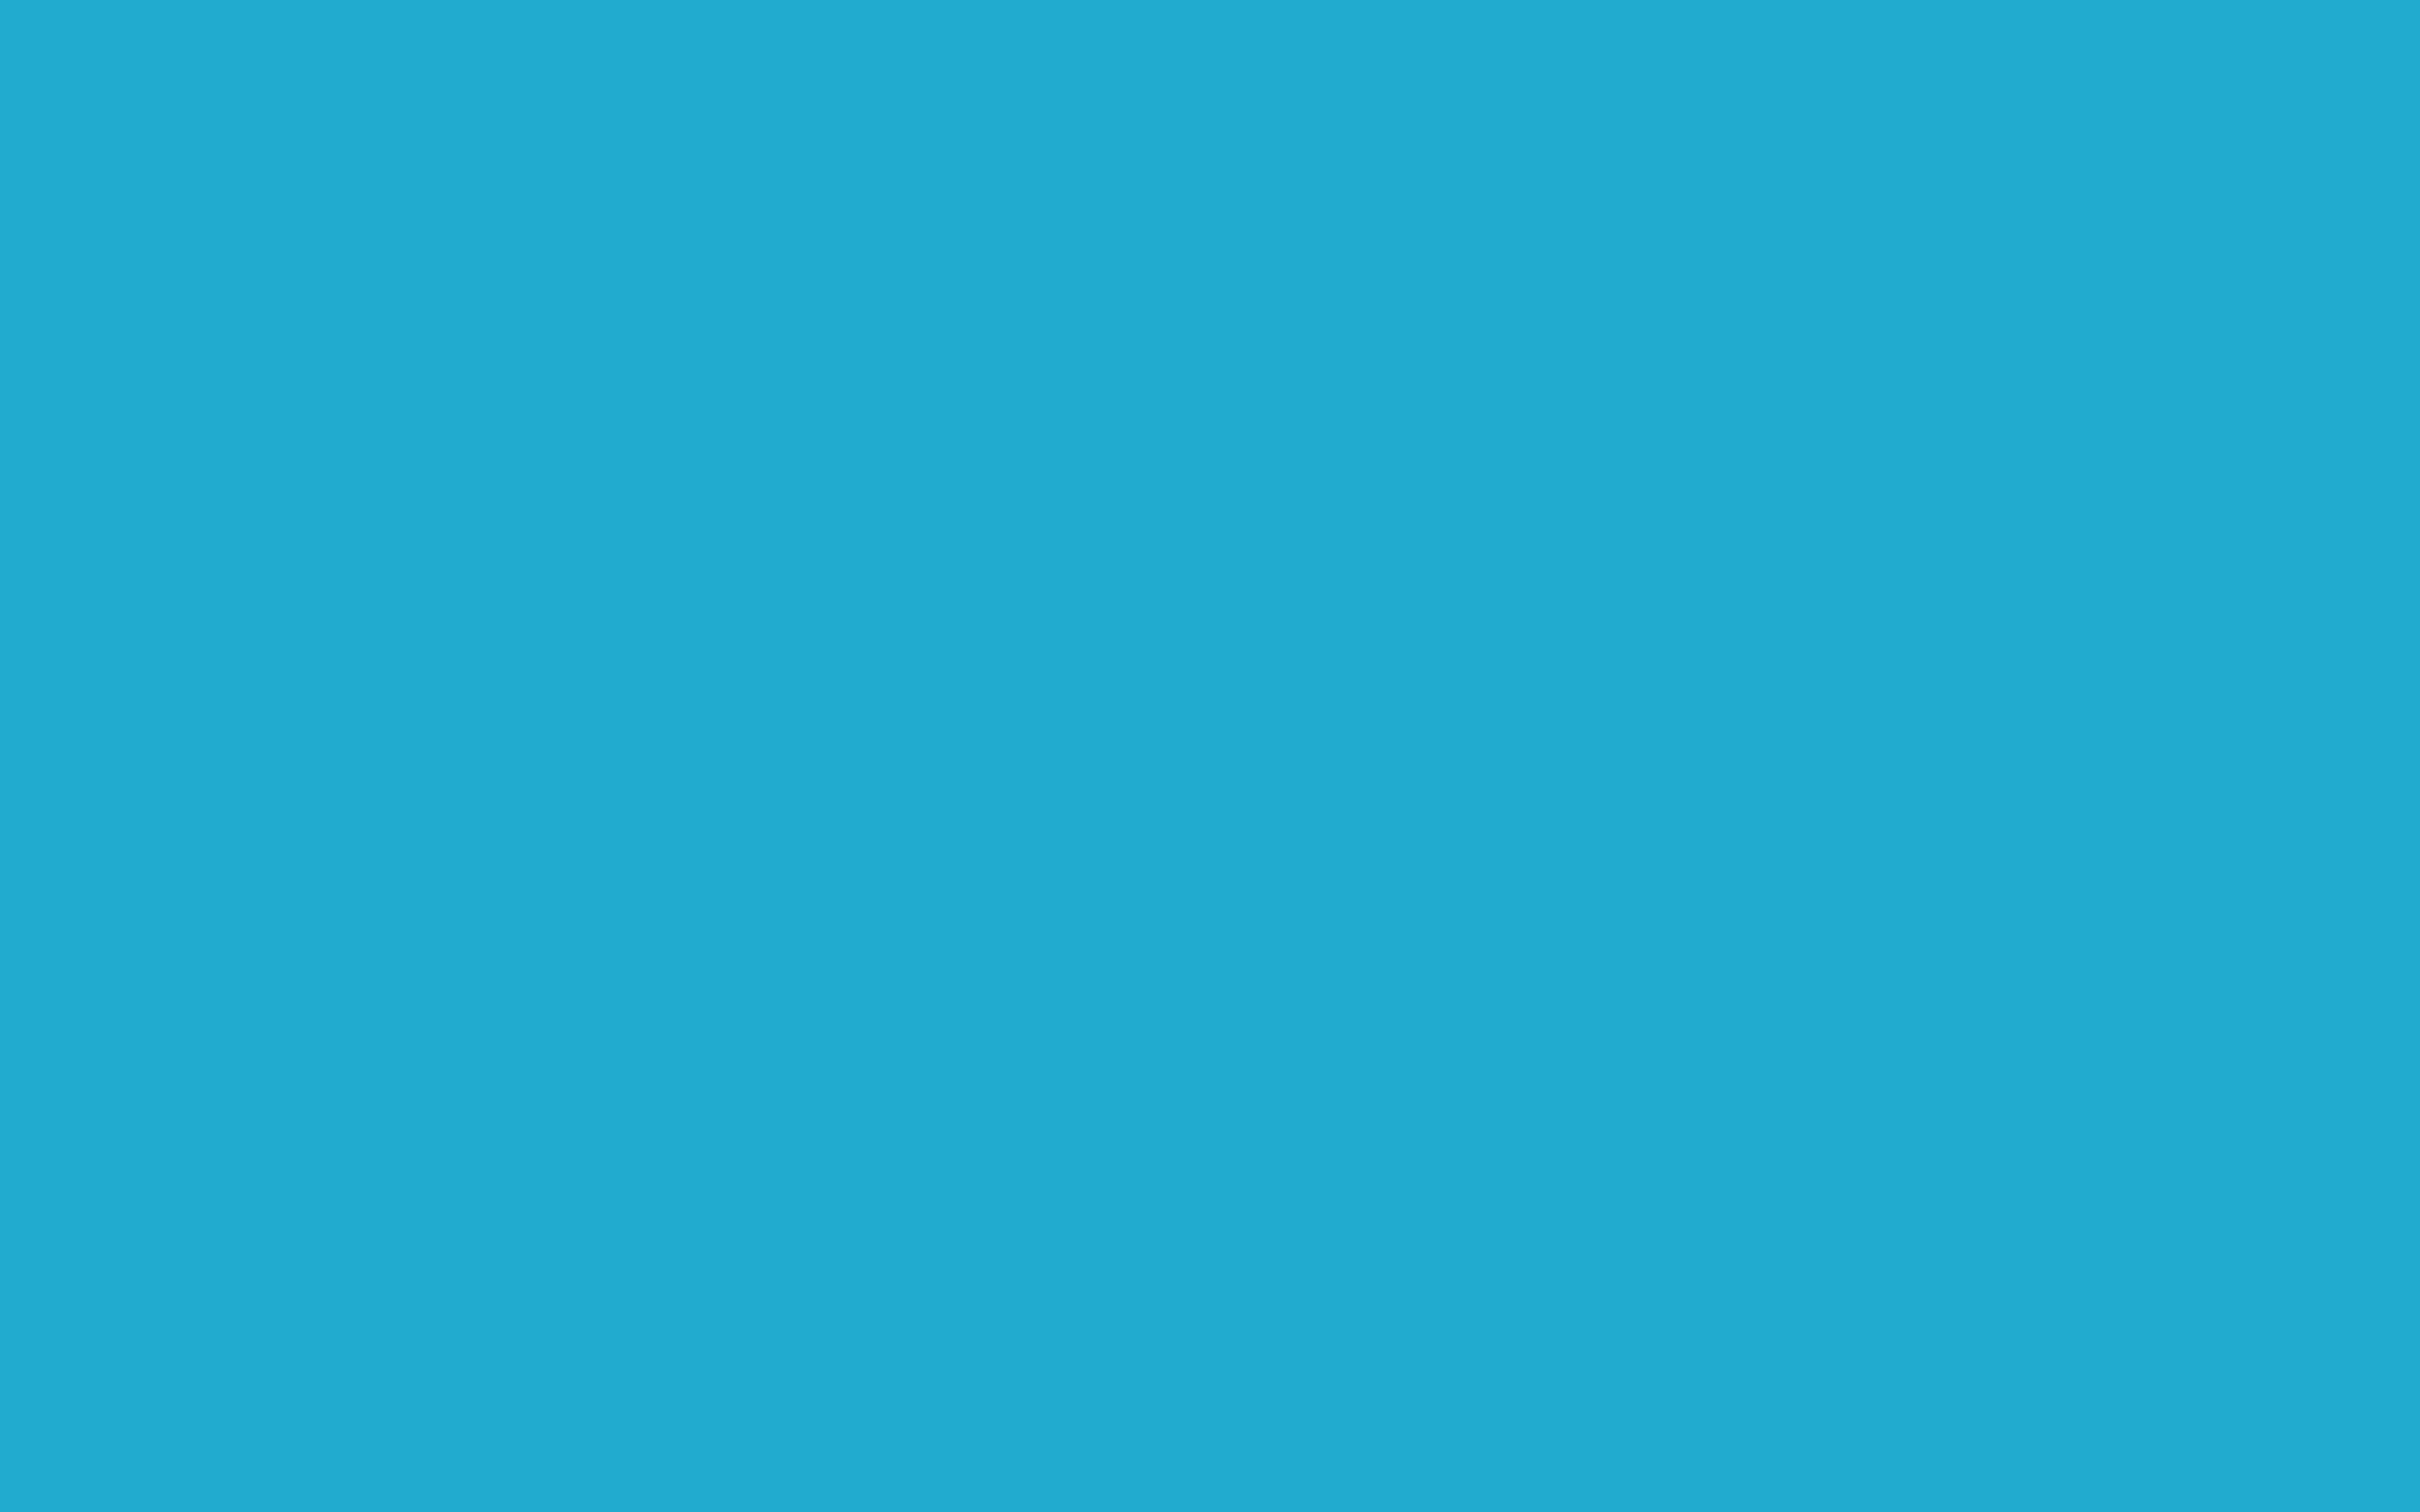 2560x1600 Ball Blue Solid Color Background